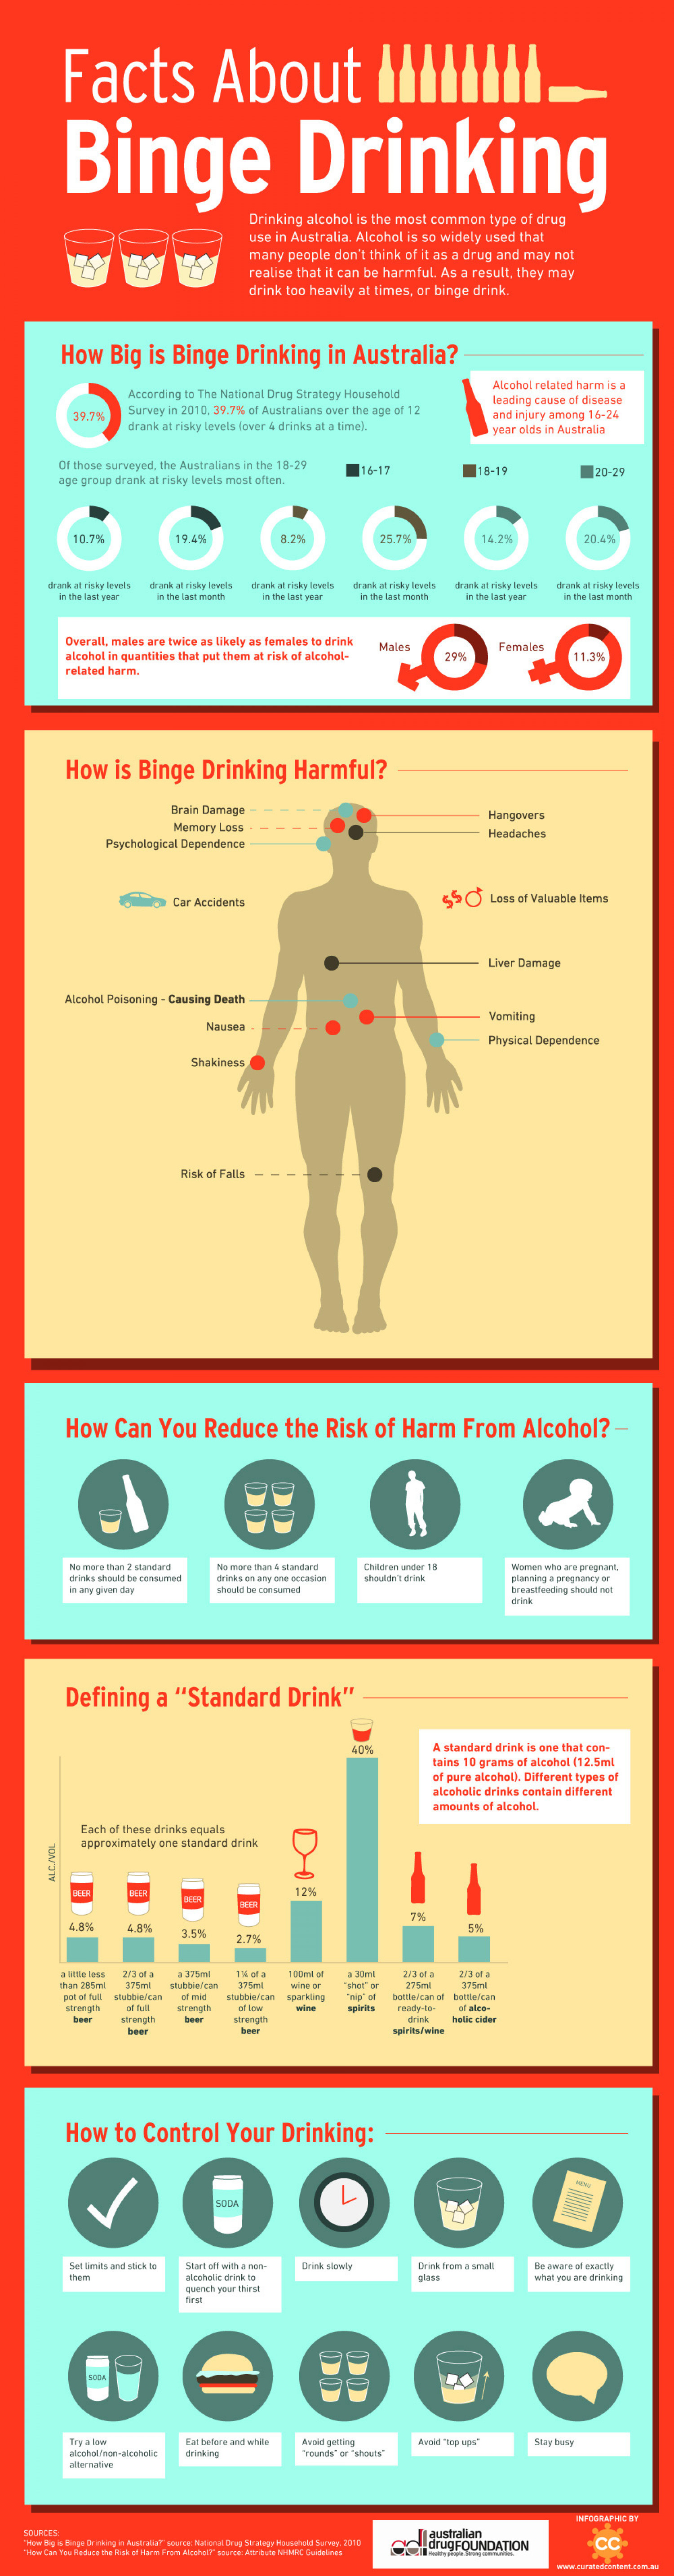 Facts about Binge Drinking Infographic